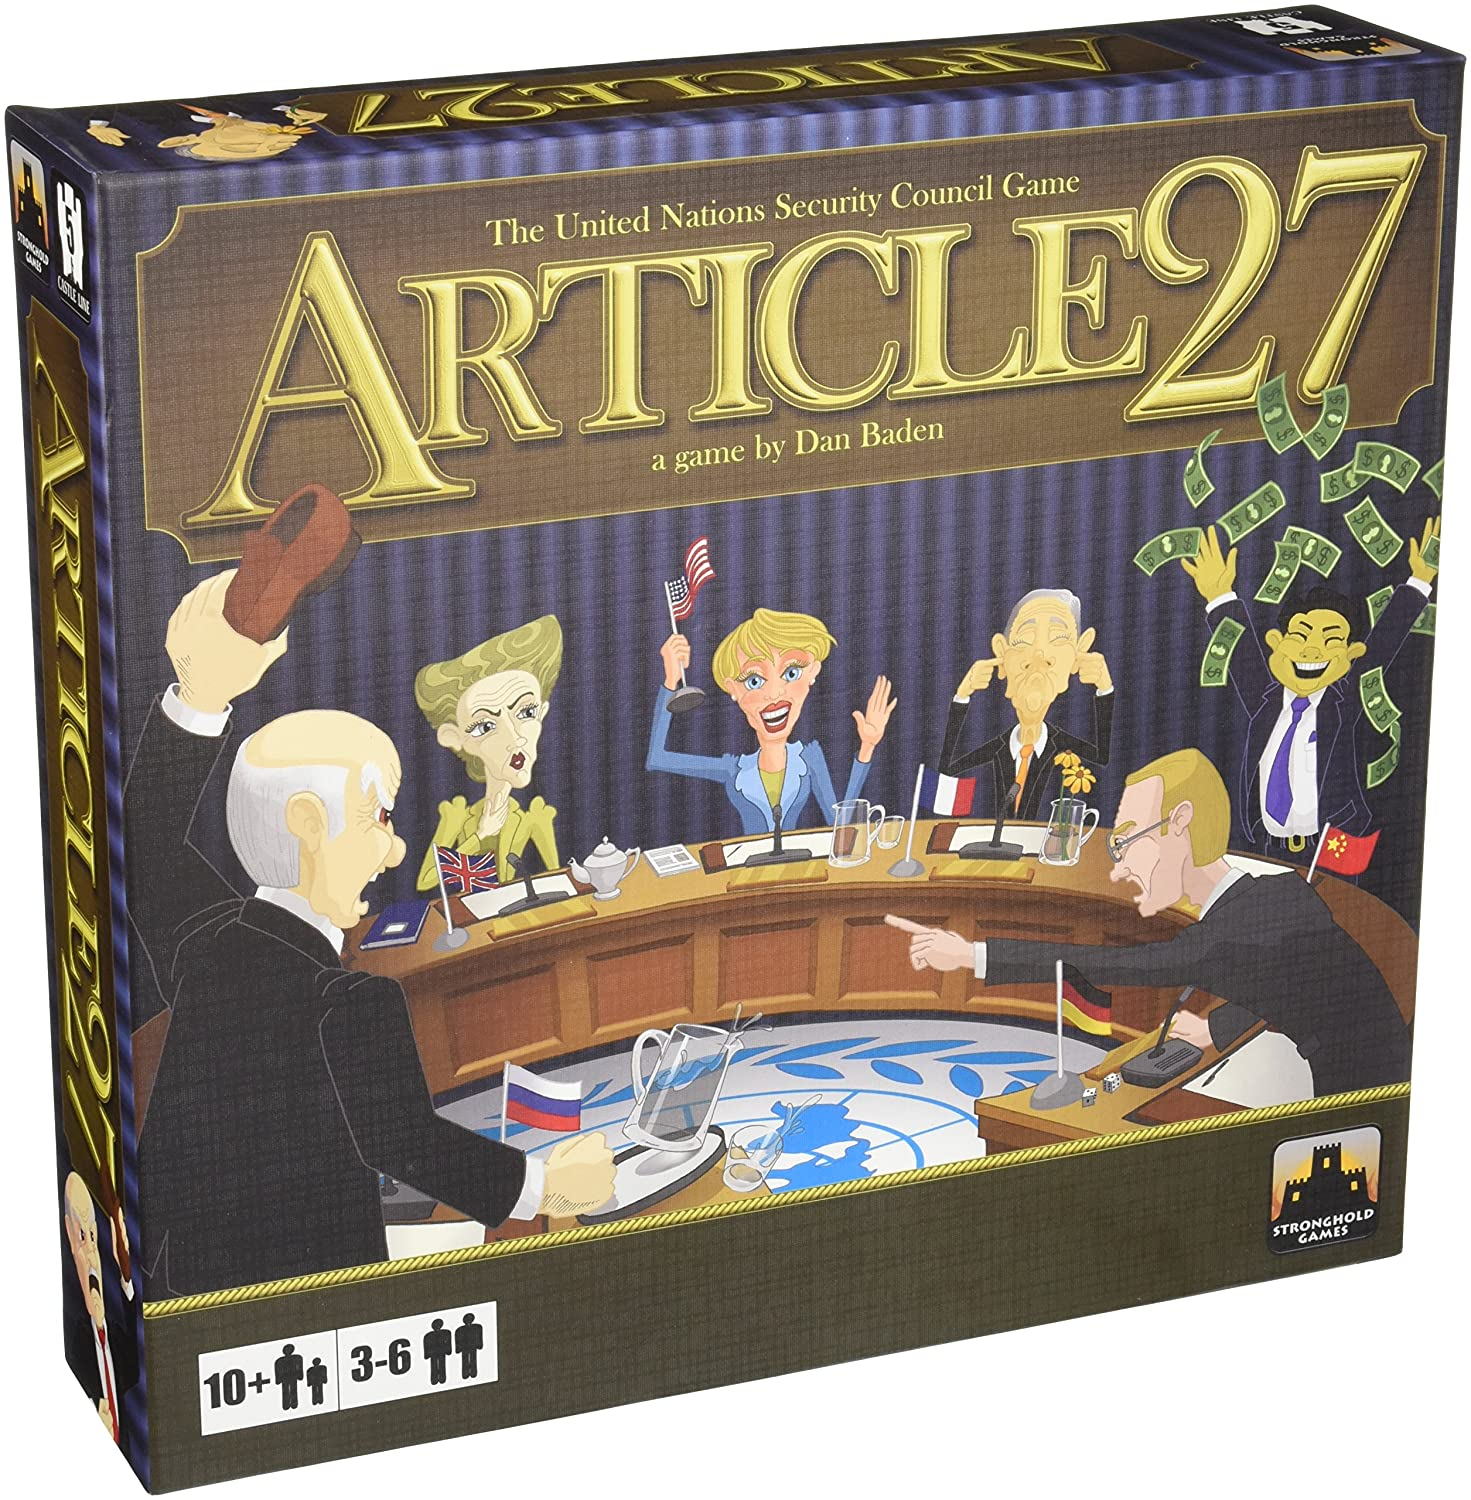 Stronghold Games 2005 - Article 27  The UN Security Council Game Brettspiele